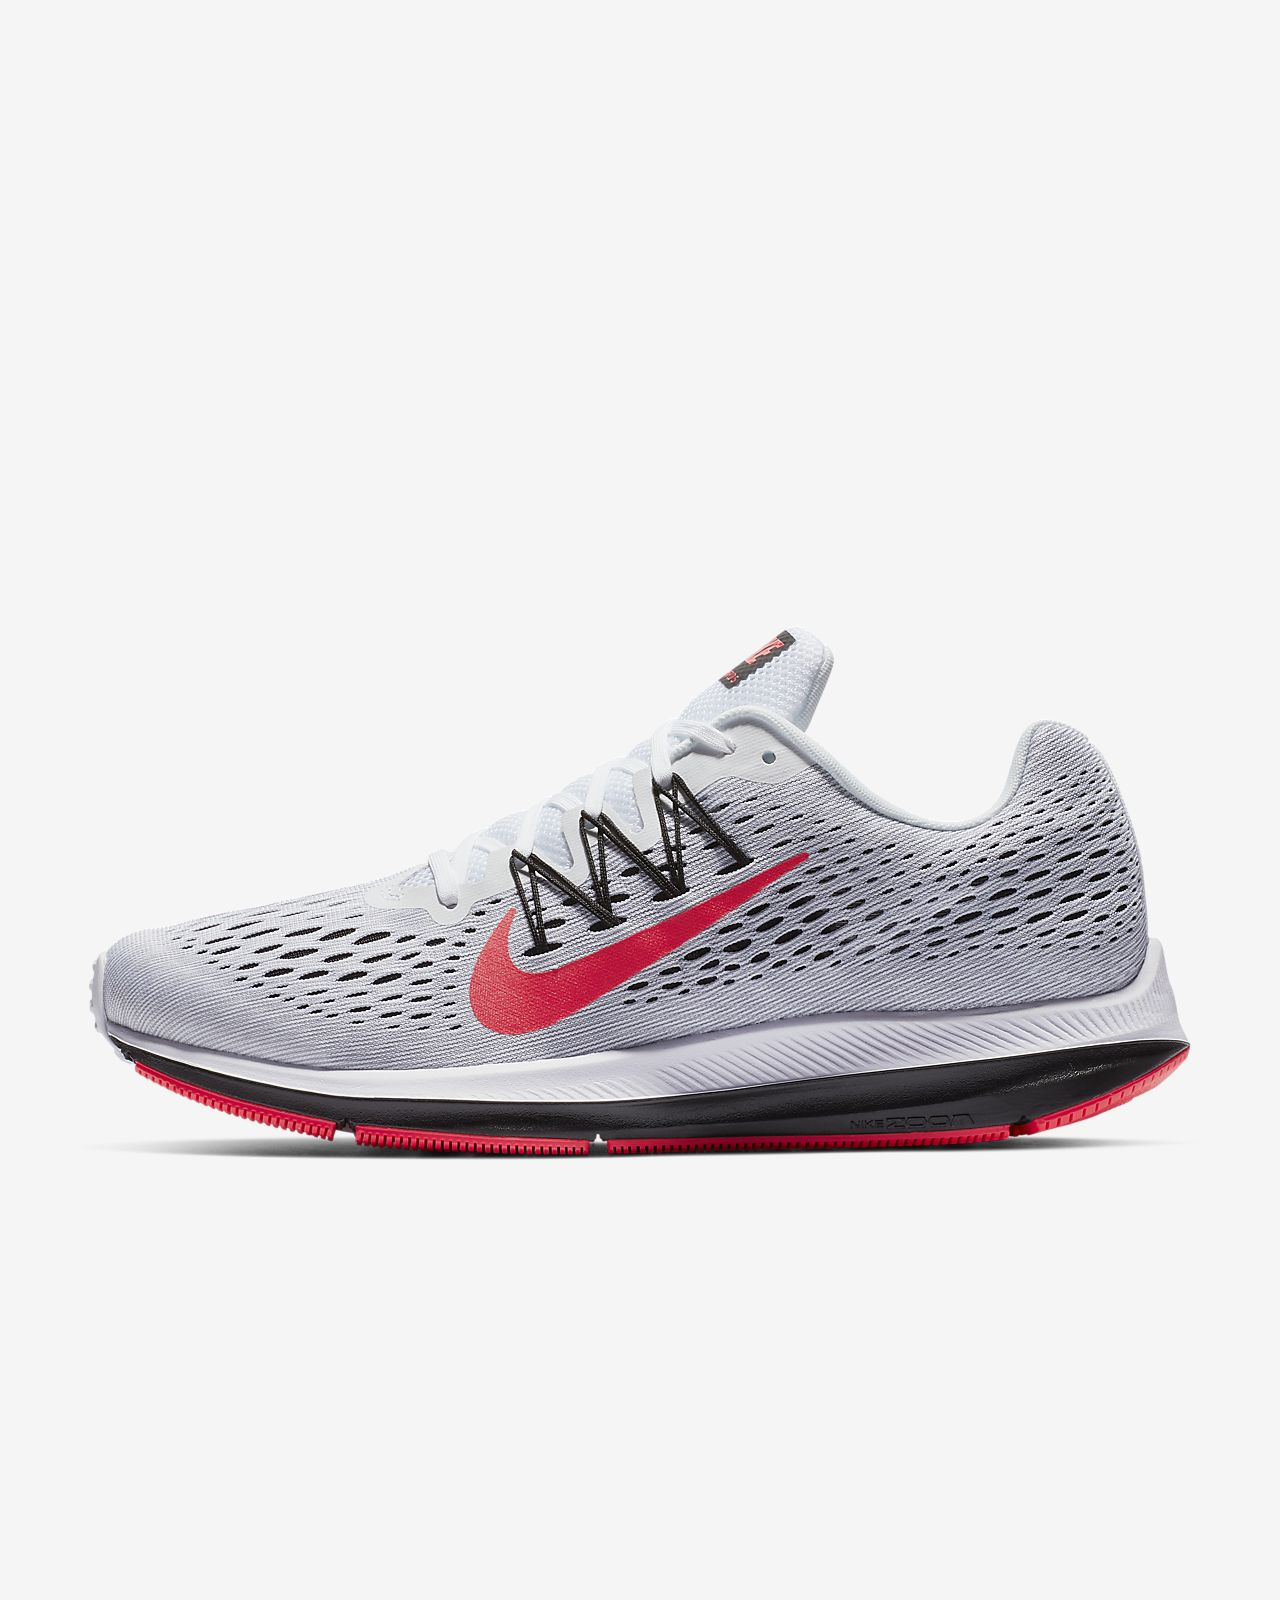 Men's Running Zoom Nike 5 Winflo Shoe Air OZuiPkX